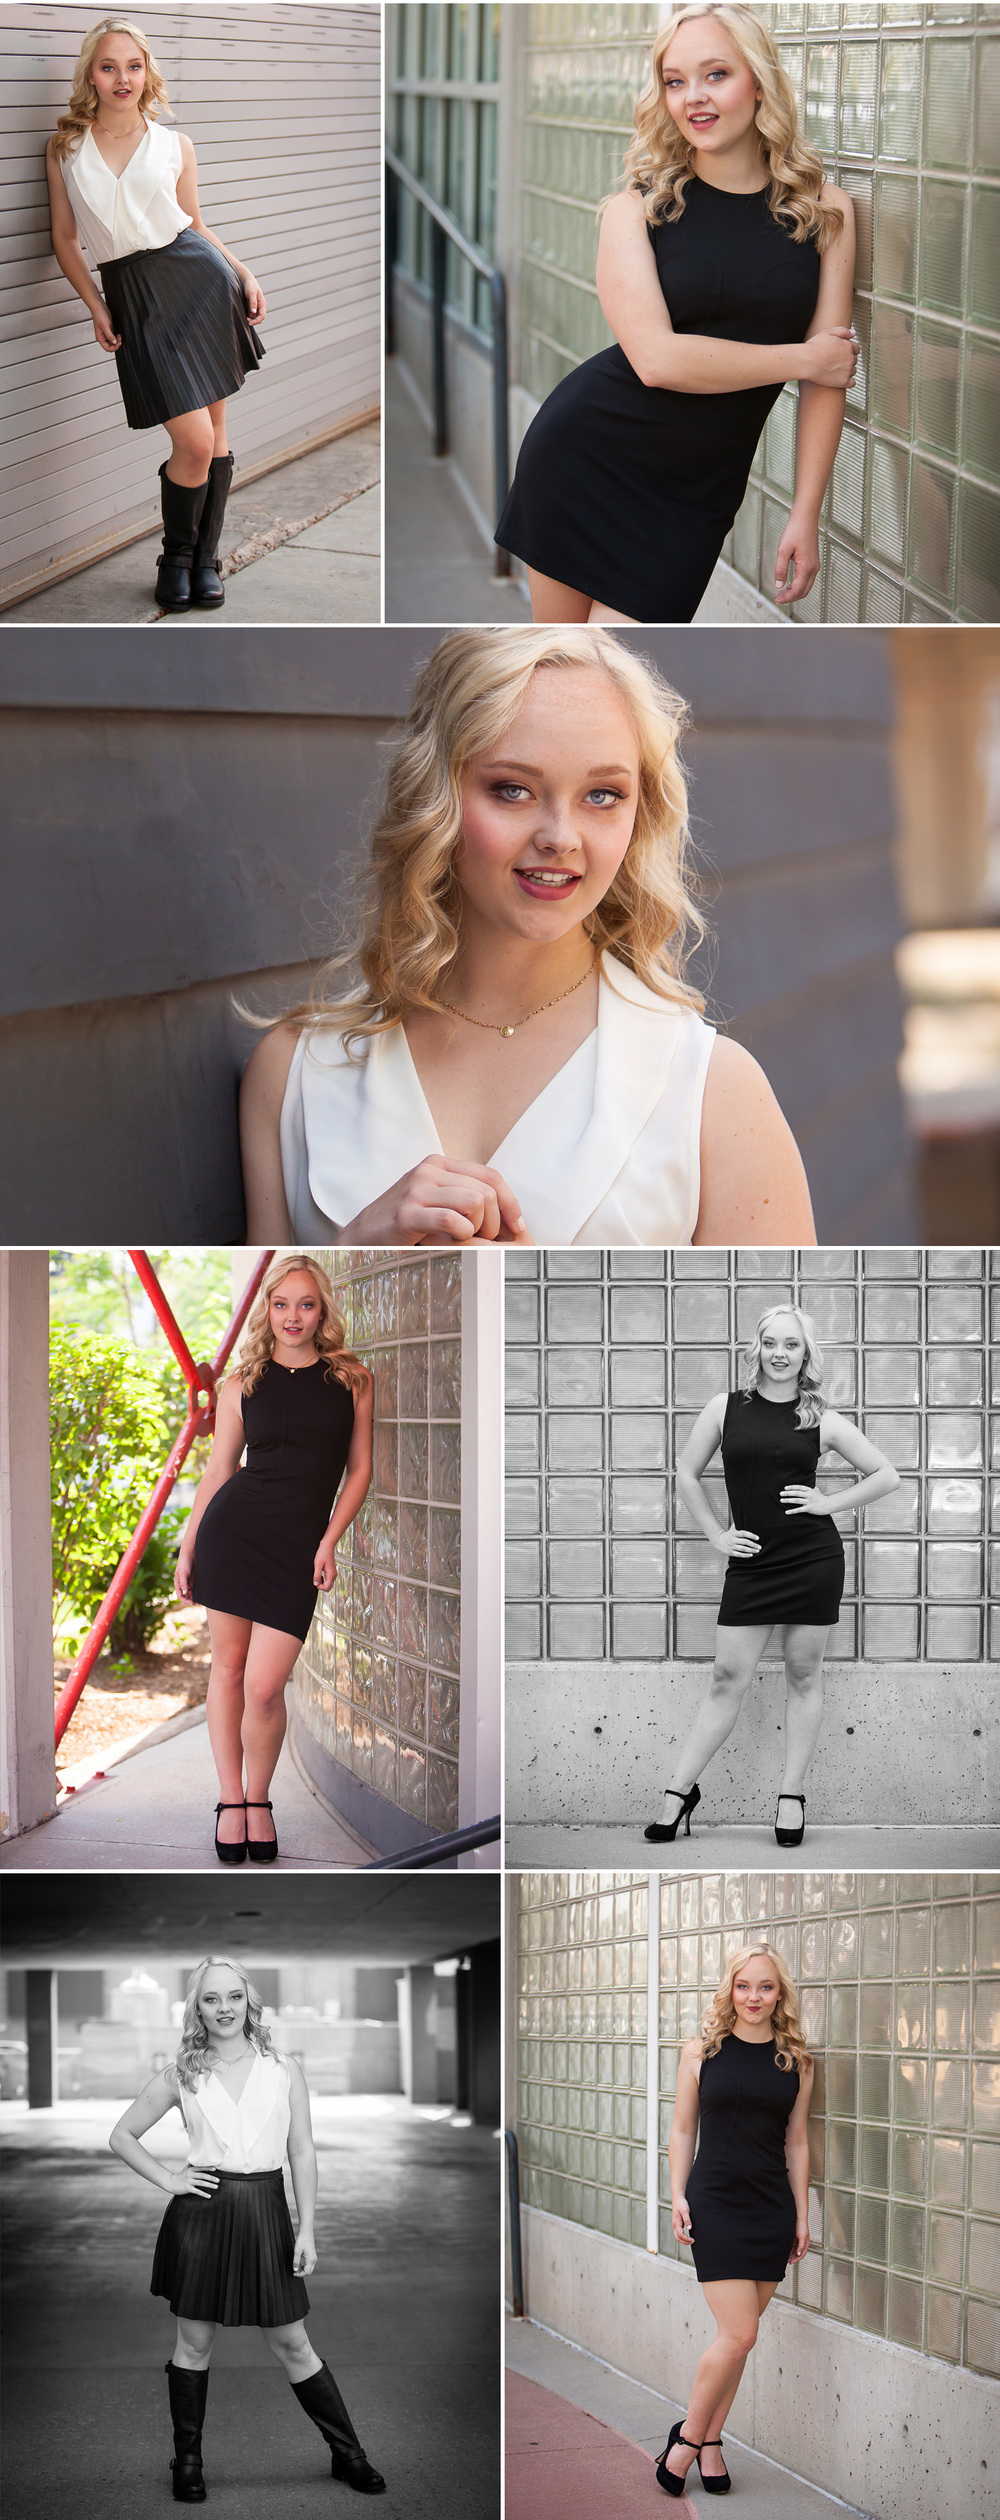 Hip, urban Senior Photos in Denver with photographer Jennifer Koskinen, Merritt Portrait Studio